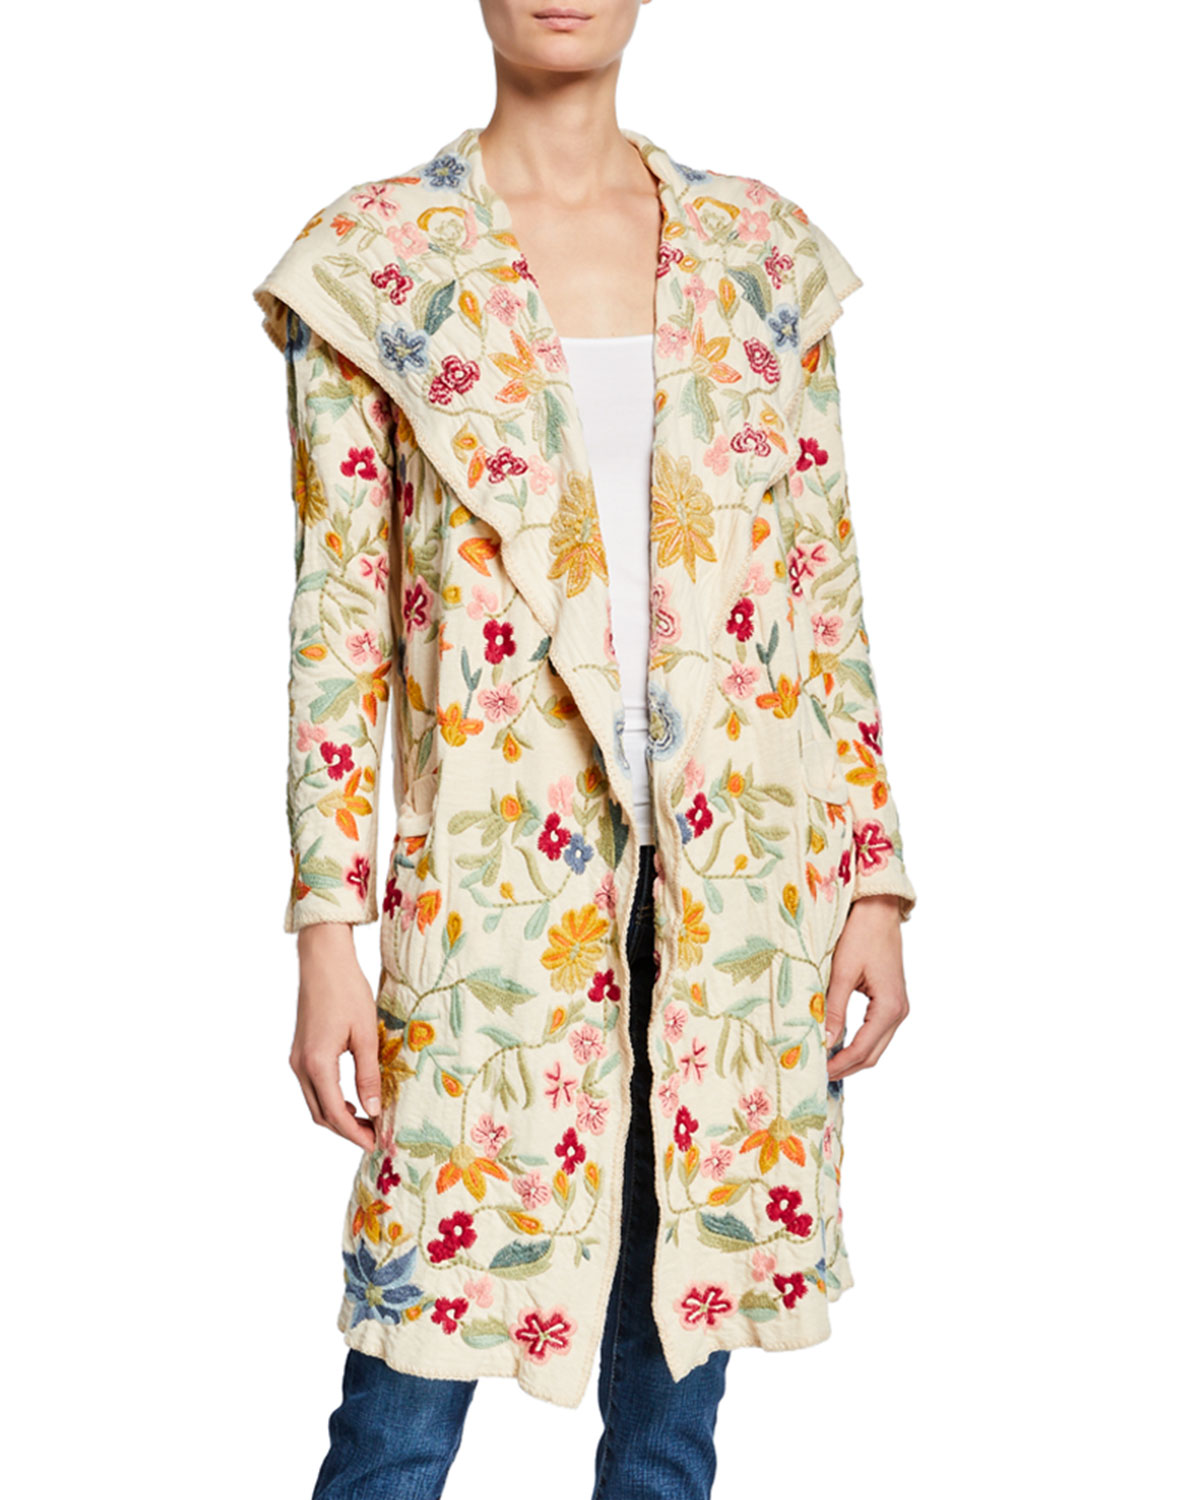 41037a2b687 Buy johnny was clothing for women - Best women's johnny was clothing shop -  Cools.com